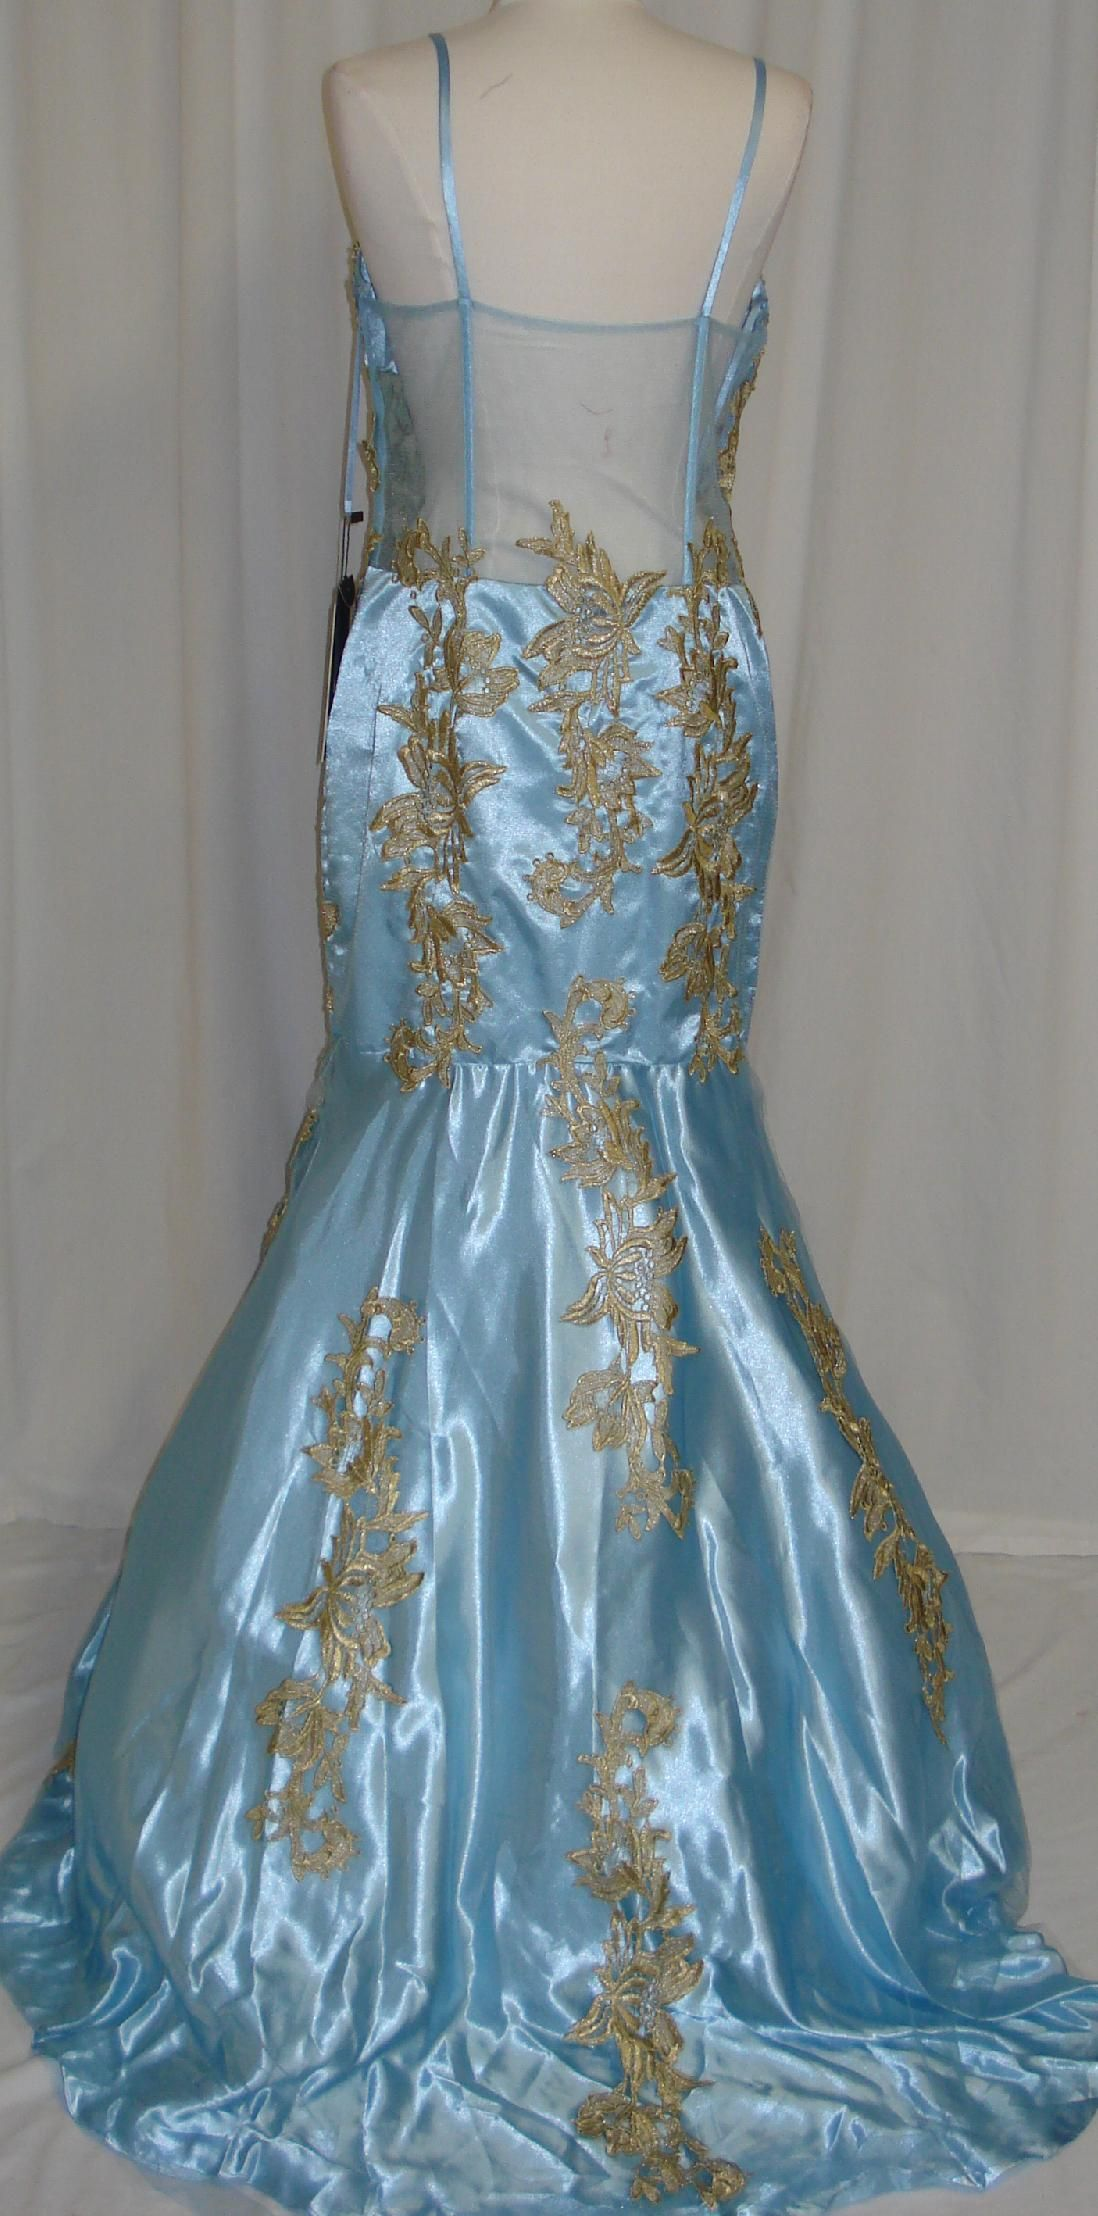 Gold blue wedding dress gown prom cocktail dress homecoming